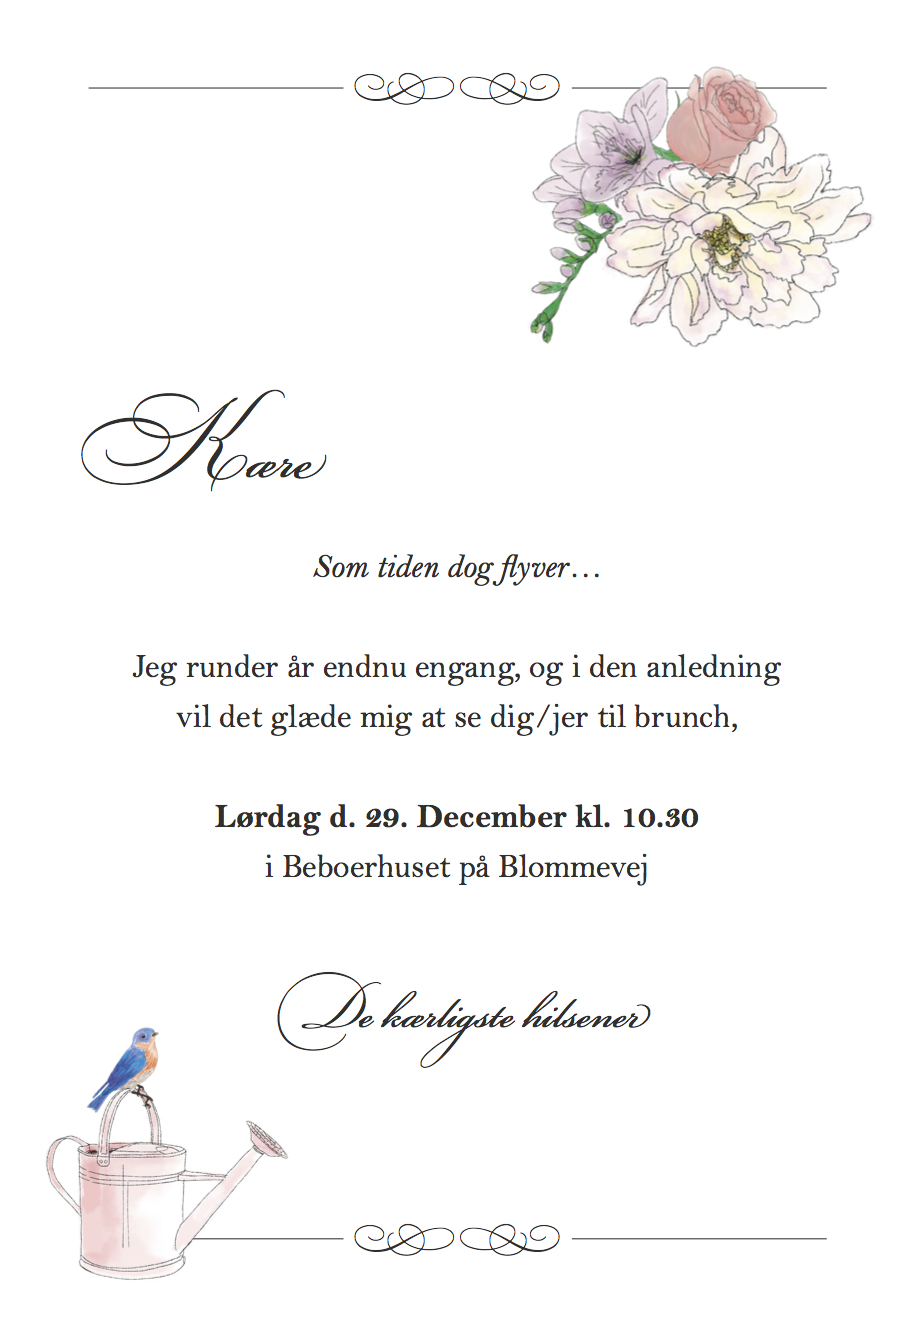 invitation-mormor80s2.jpg